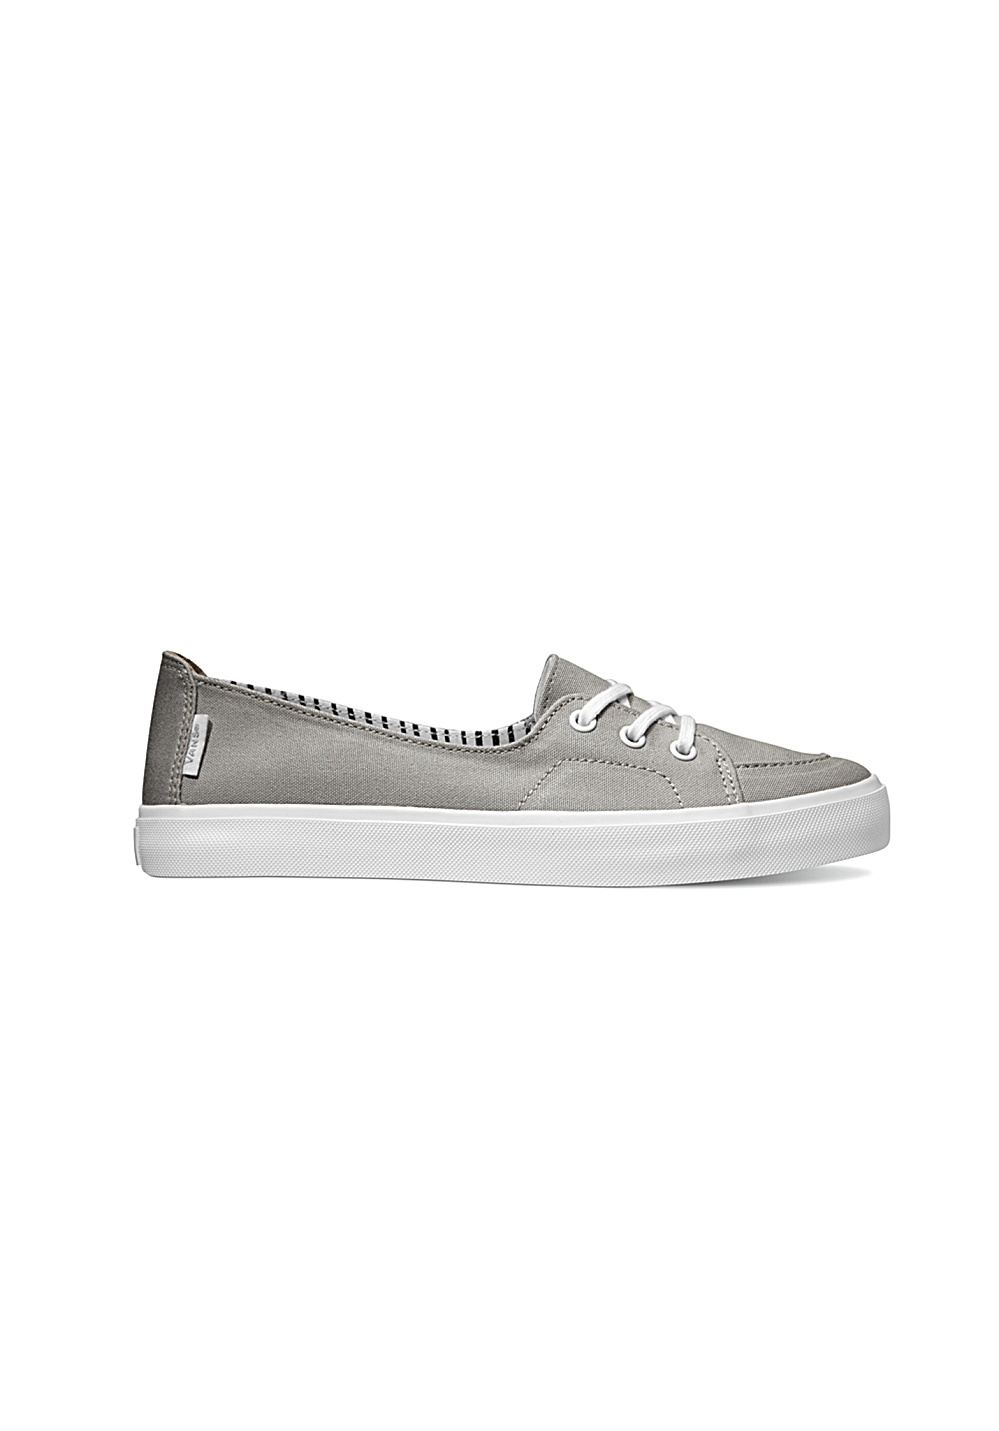 cd21147fa8 Vans Palisades SF - Sneakers for Women - Grey - Planet Sports